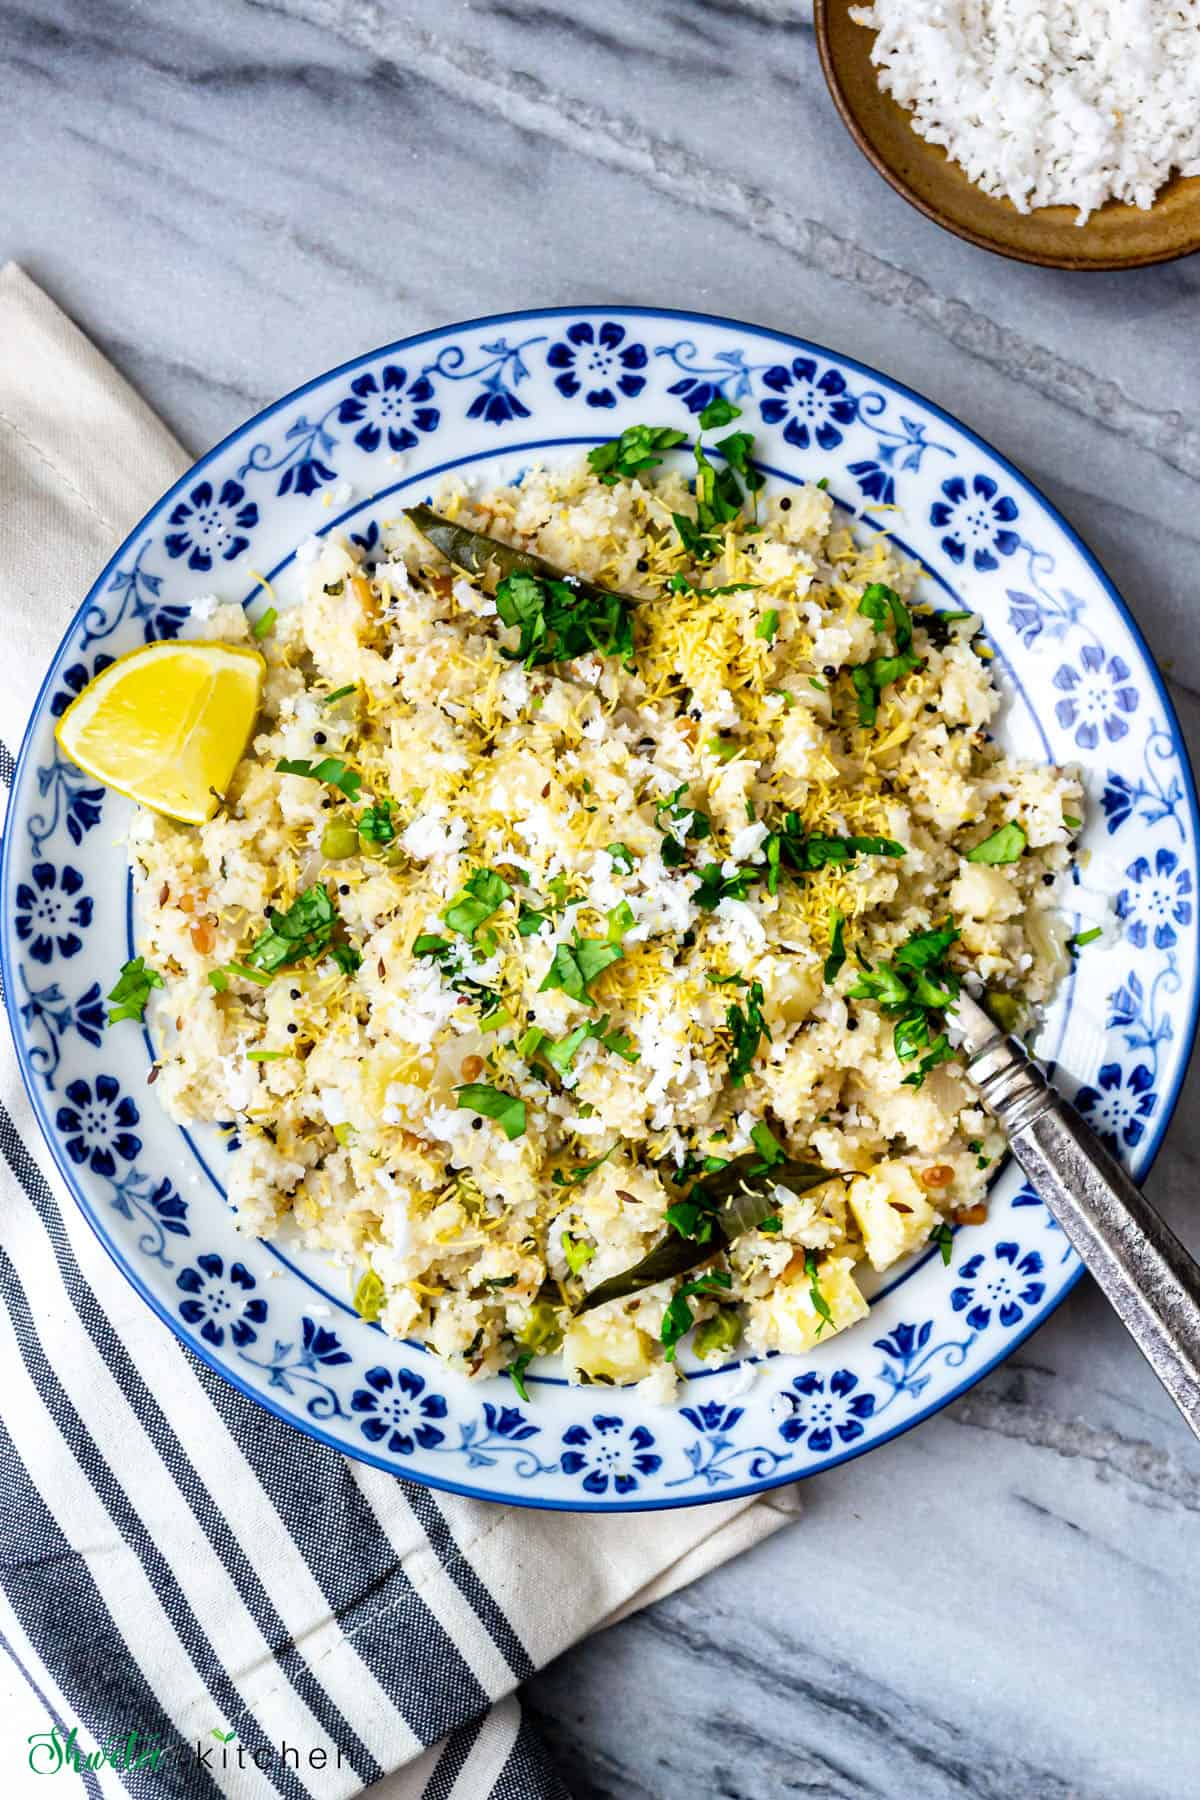 Upma served in a white an blue patterned bowl with a wedge of lemon and fresh herbs